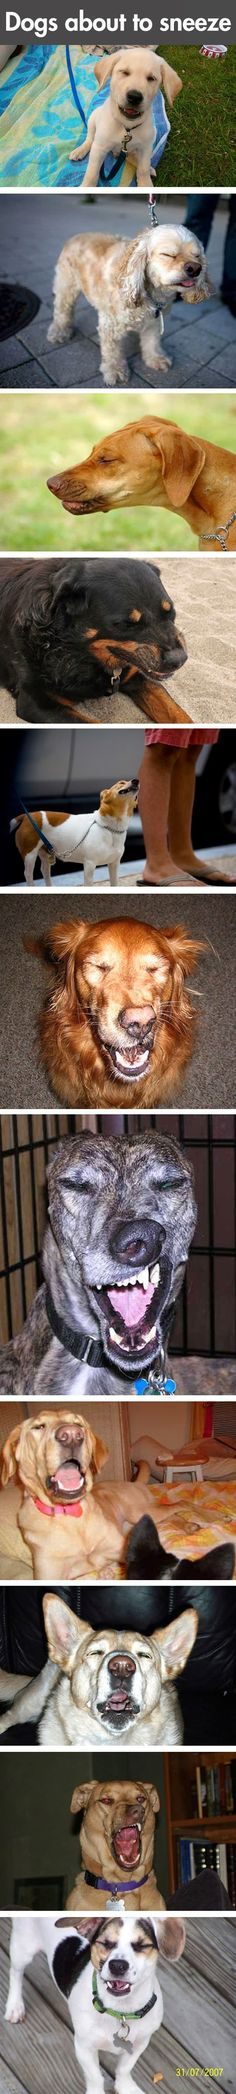 s7reetsahead: dogs about to sneeze